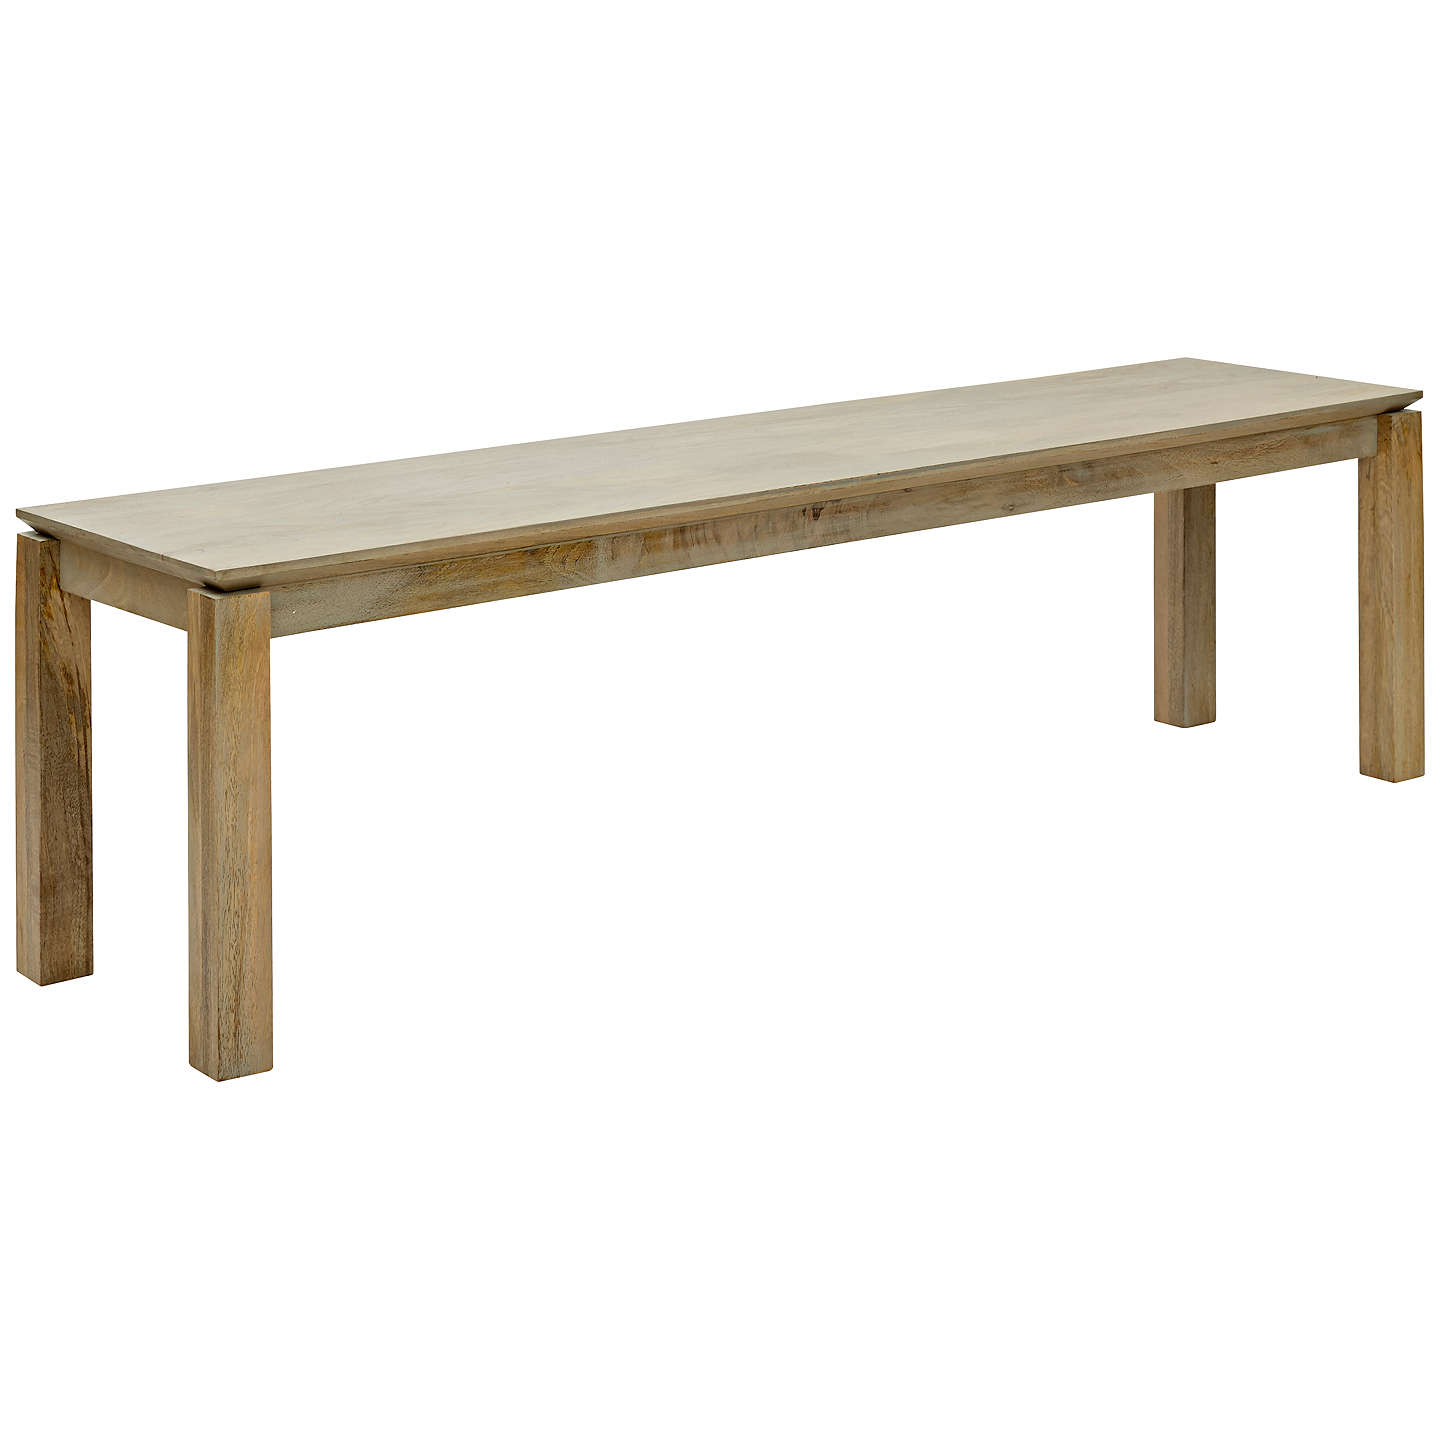 john lewis asha 3-seater dining bench, grey at john lewis 3 Seater Dining Bench